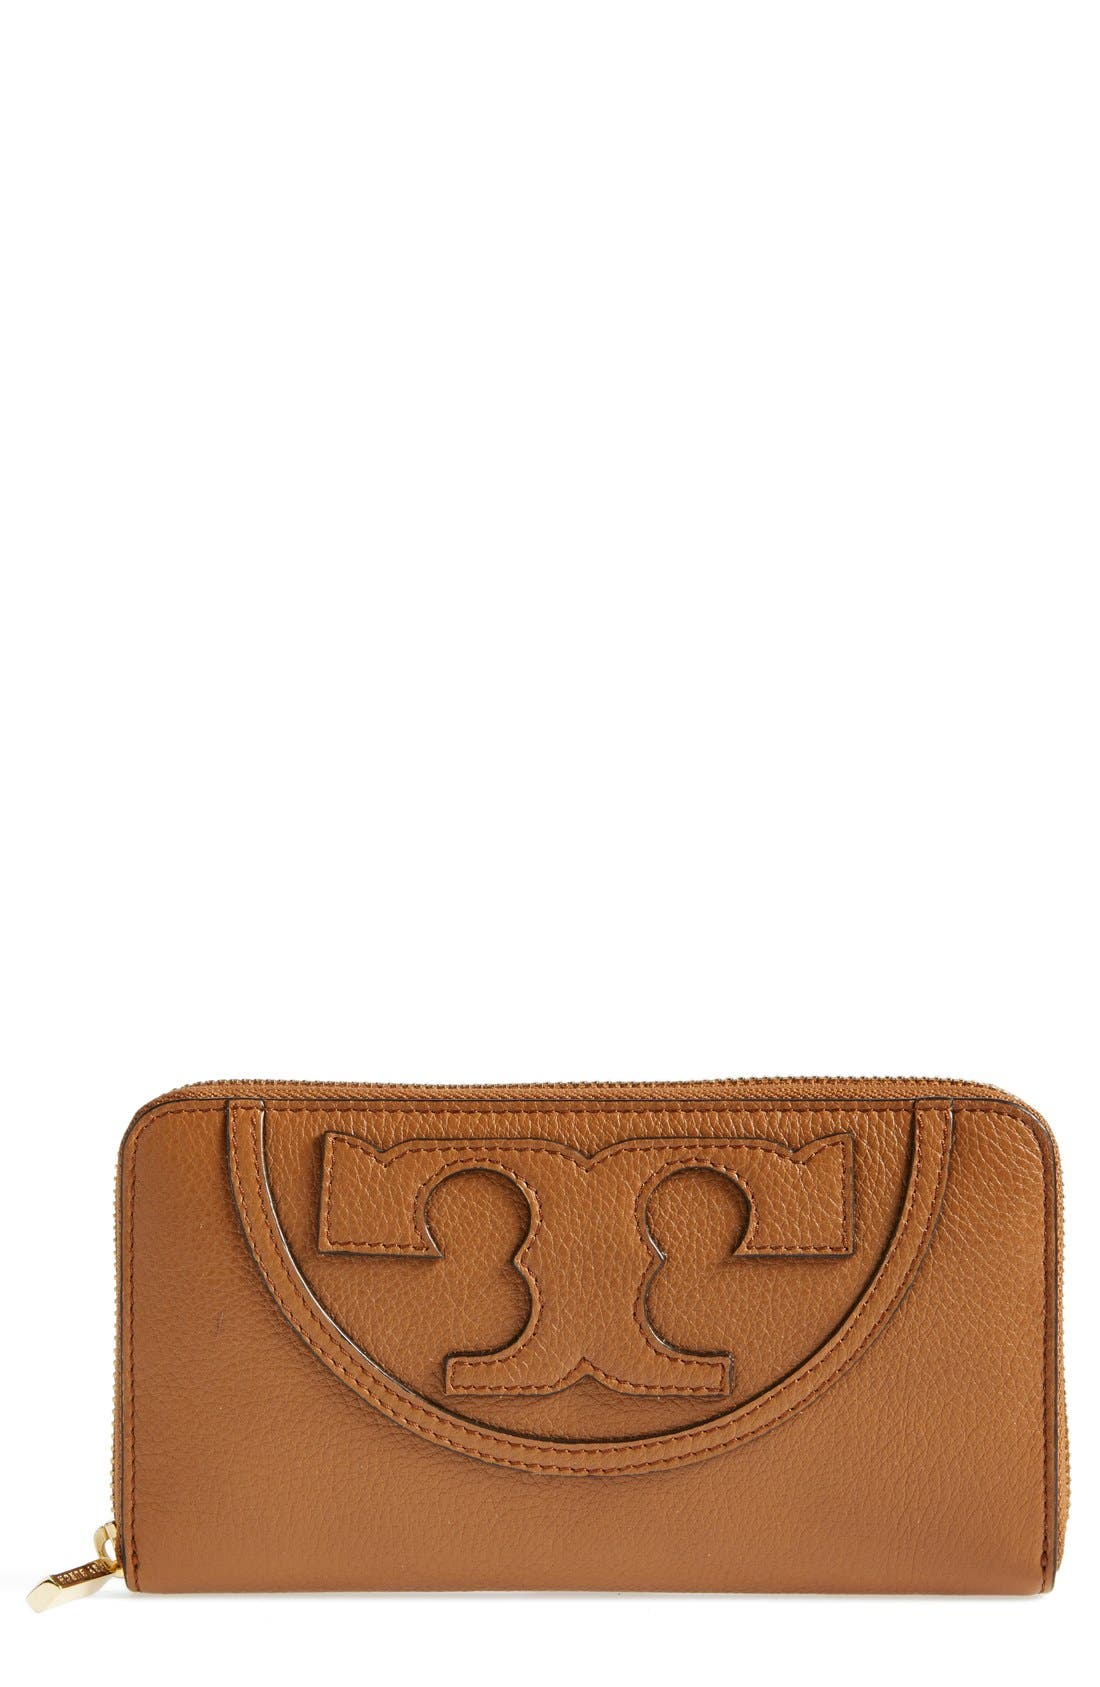 Main Image - Tory Burch 'All T' Leather Continental Wallet